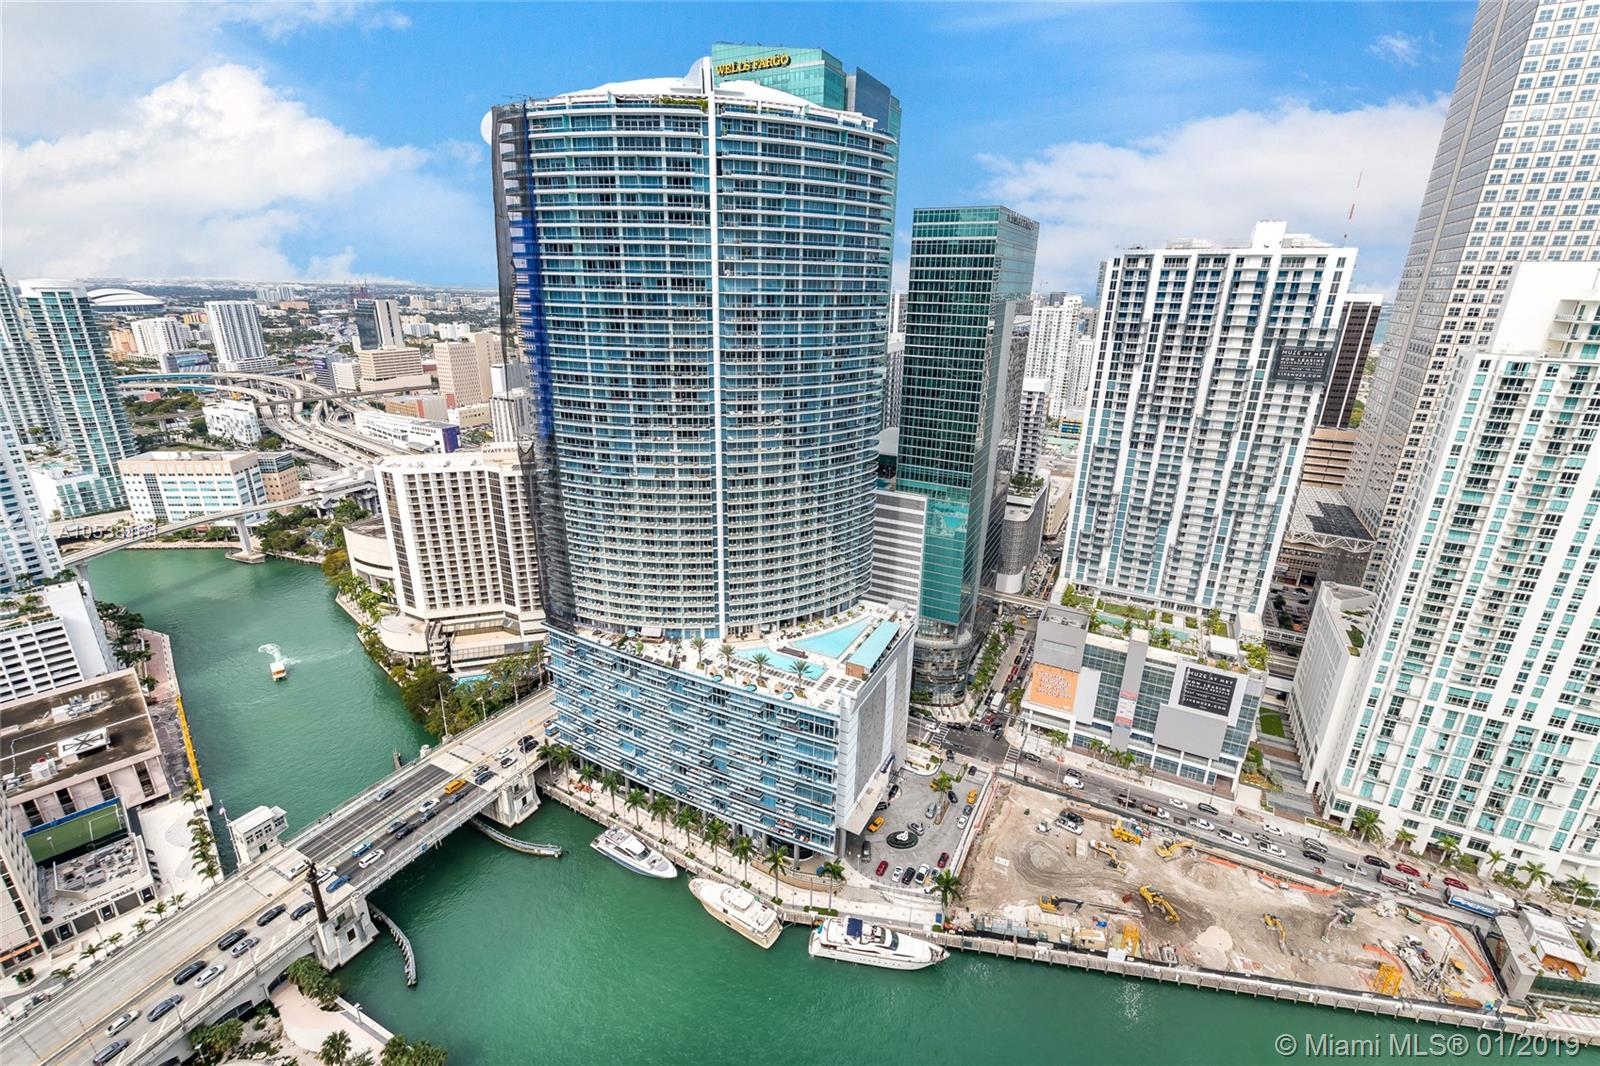 465 Brickell Ave #4302, Miami | MLS# A10538164 | Closed Rental